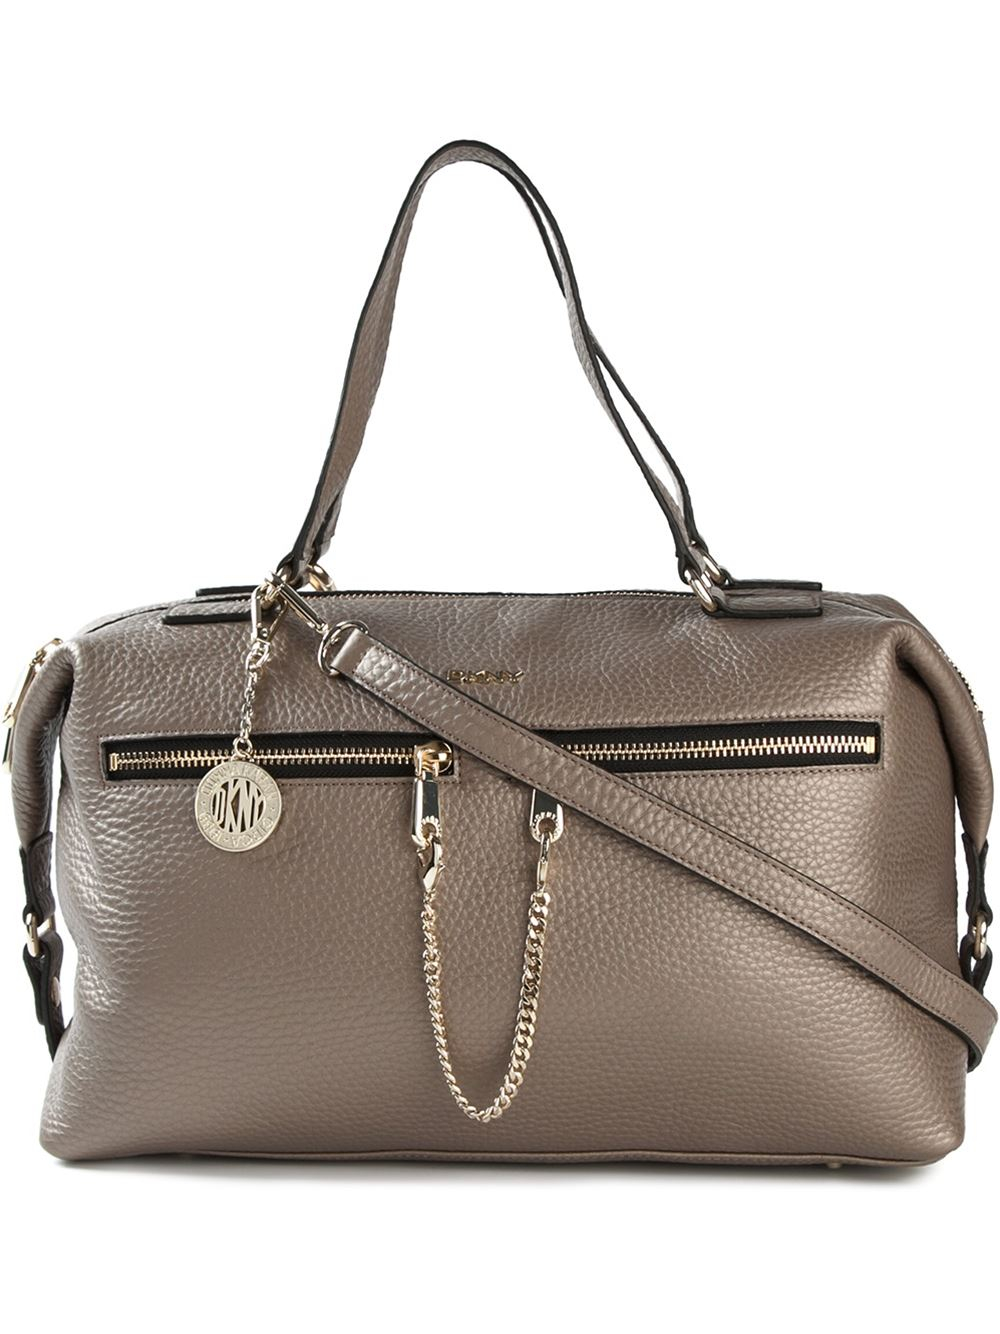 dkny zip detailed crossbody bag in brown lyst